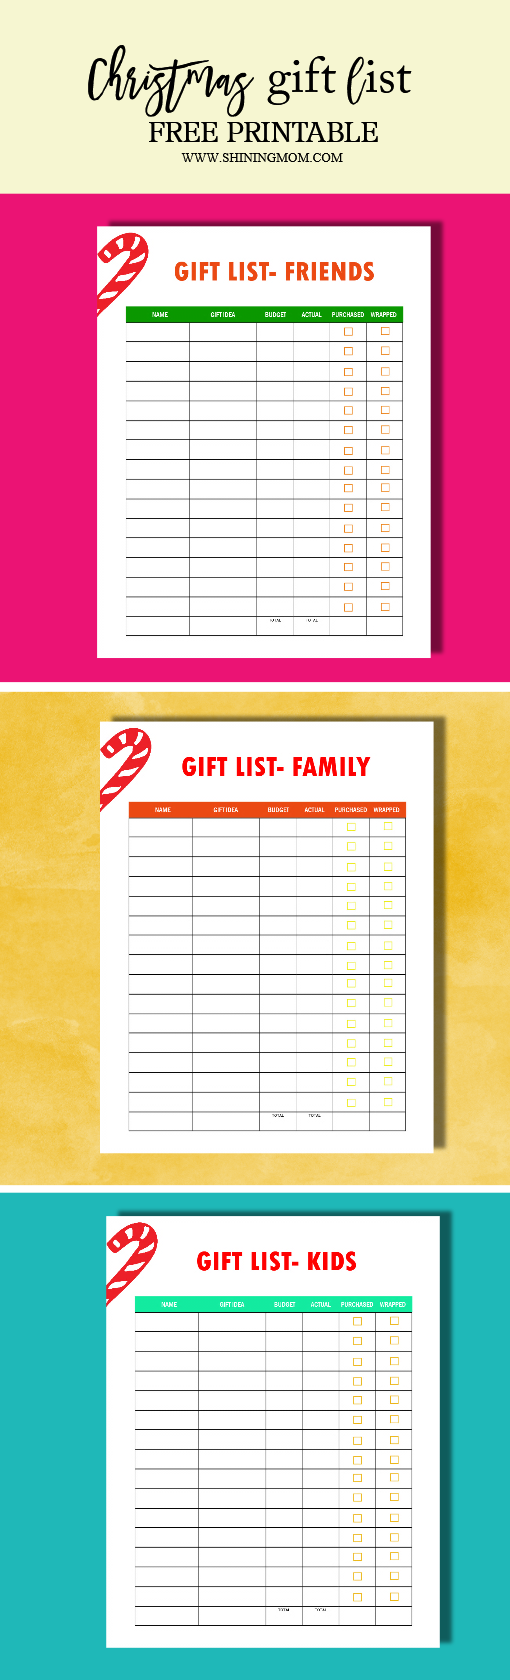 free-printable-christmas-gift-list-template